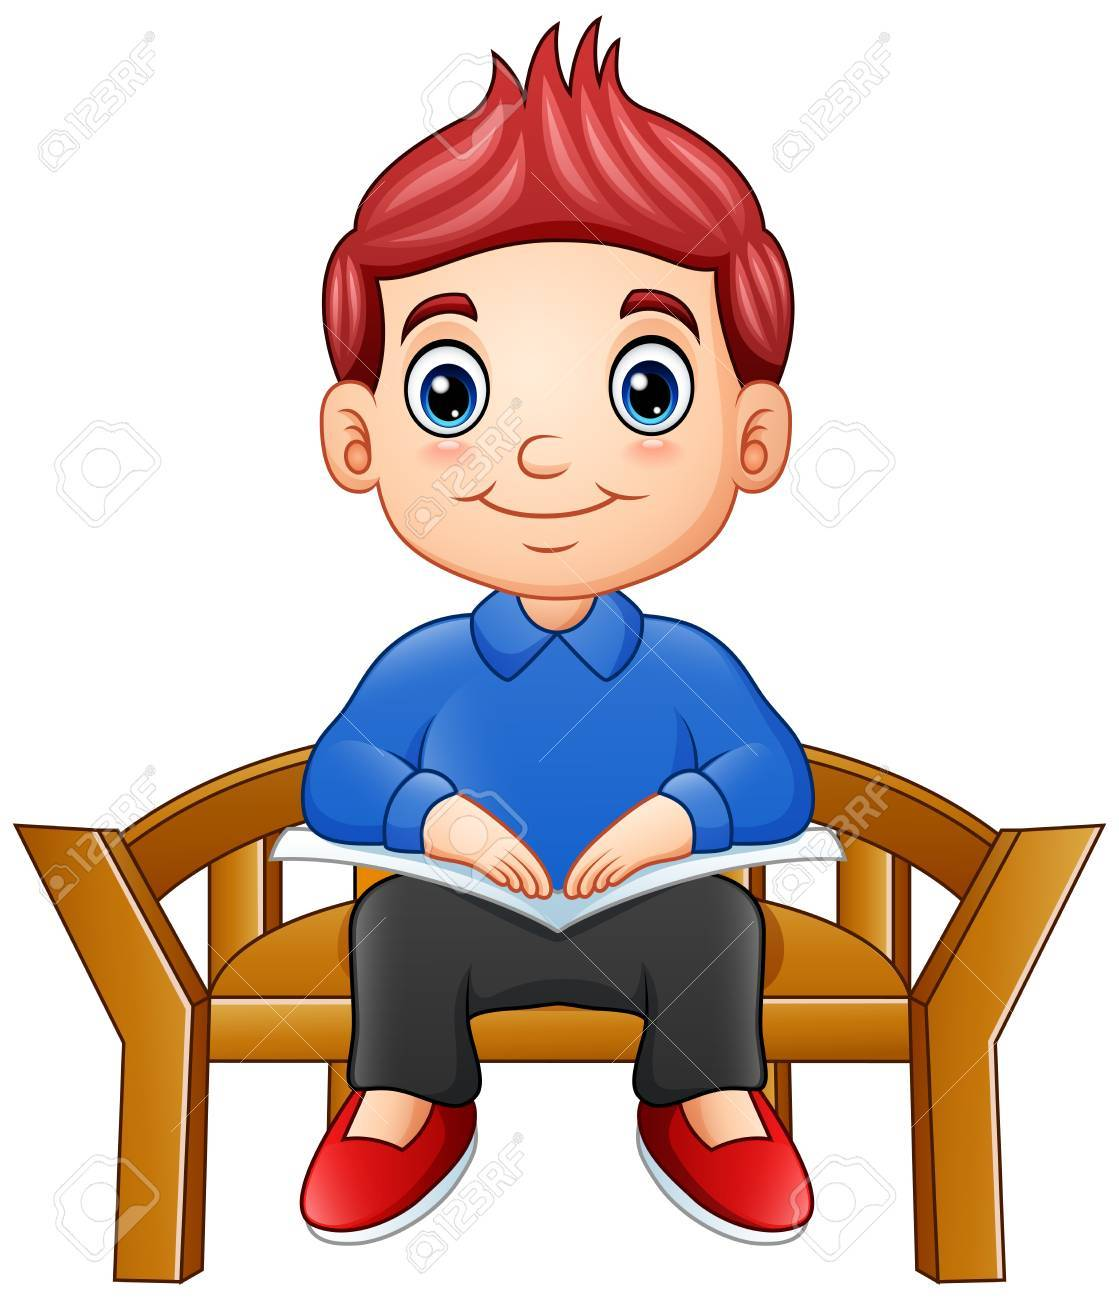 Clipart chair boy sitting banner library library Boy sitting on chair clipart 6 » Clipart Portal banner library library